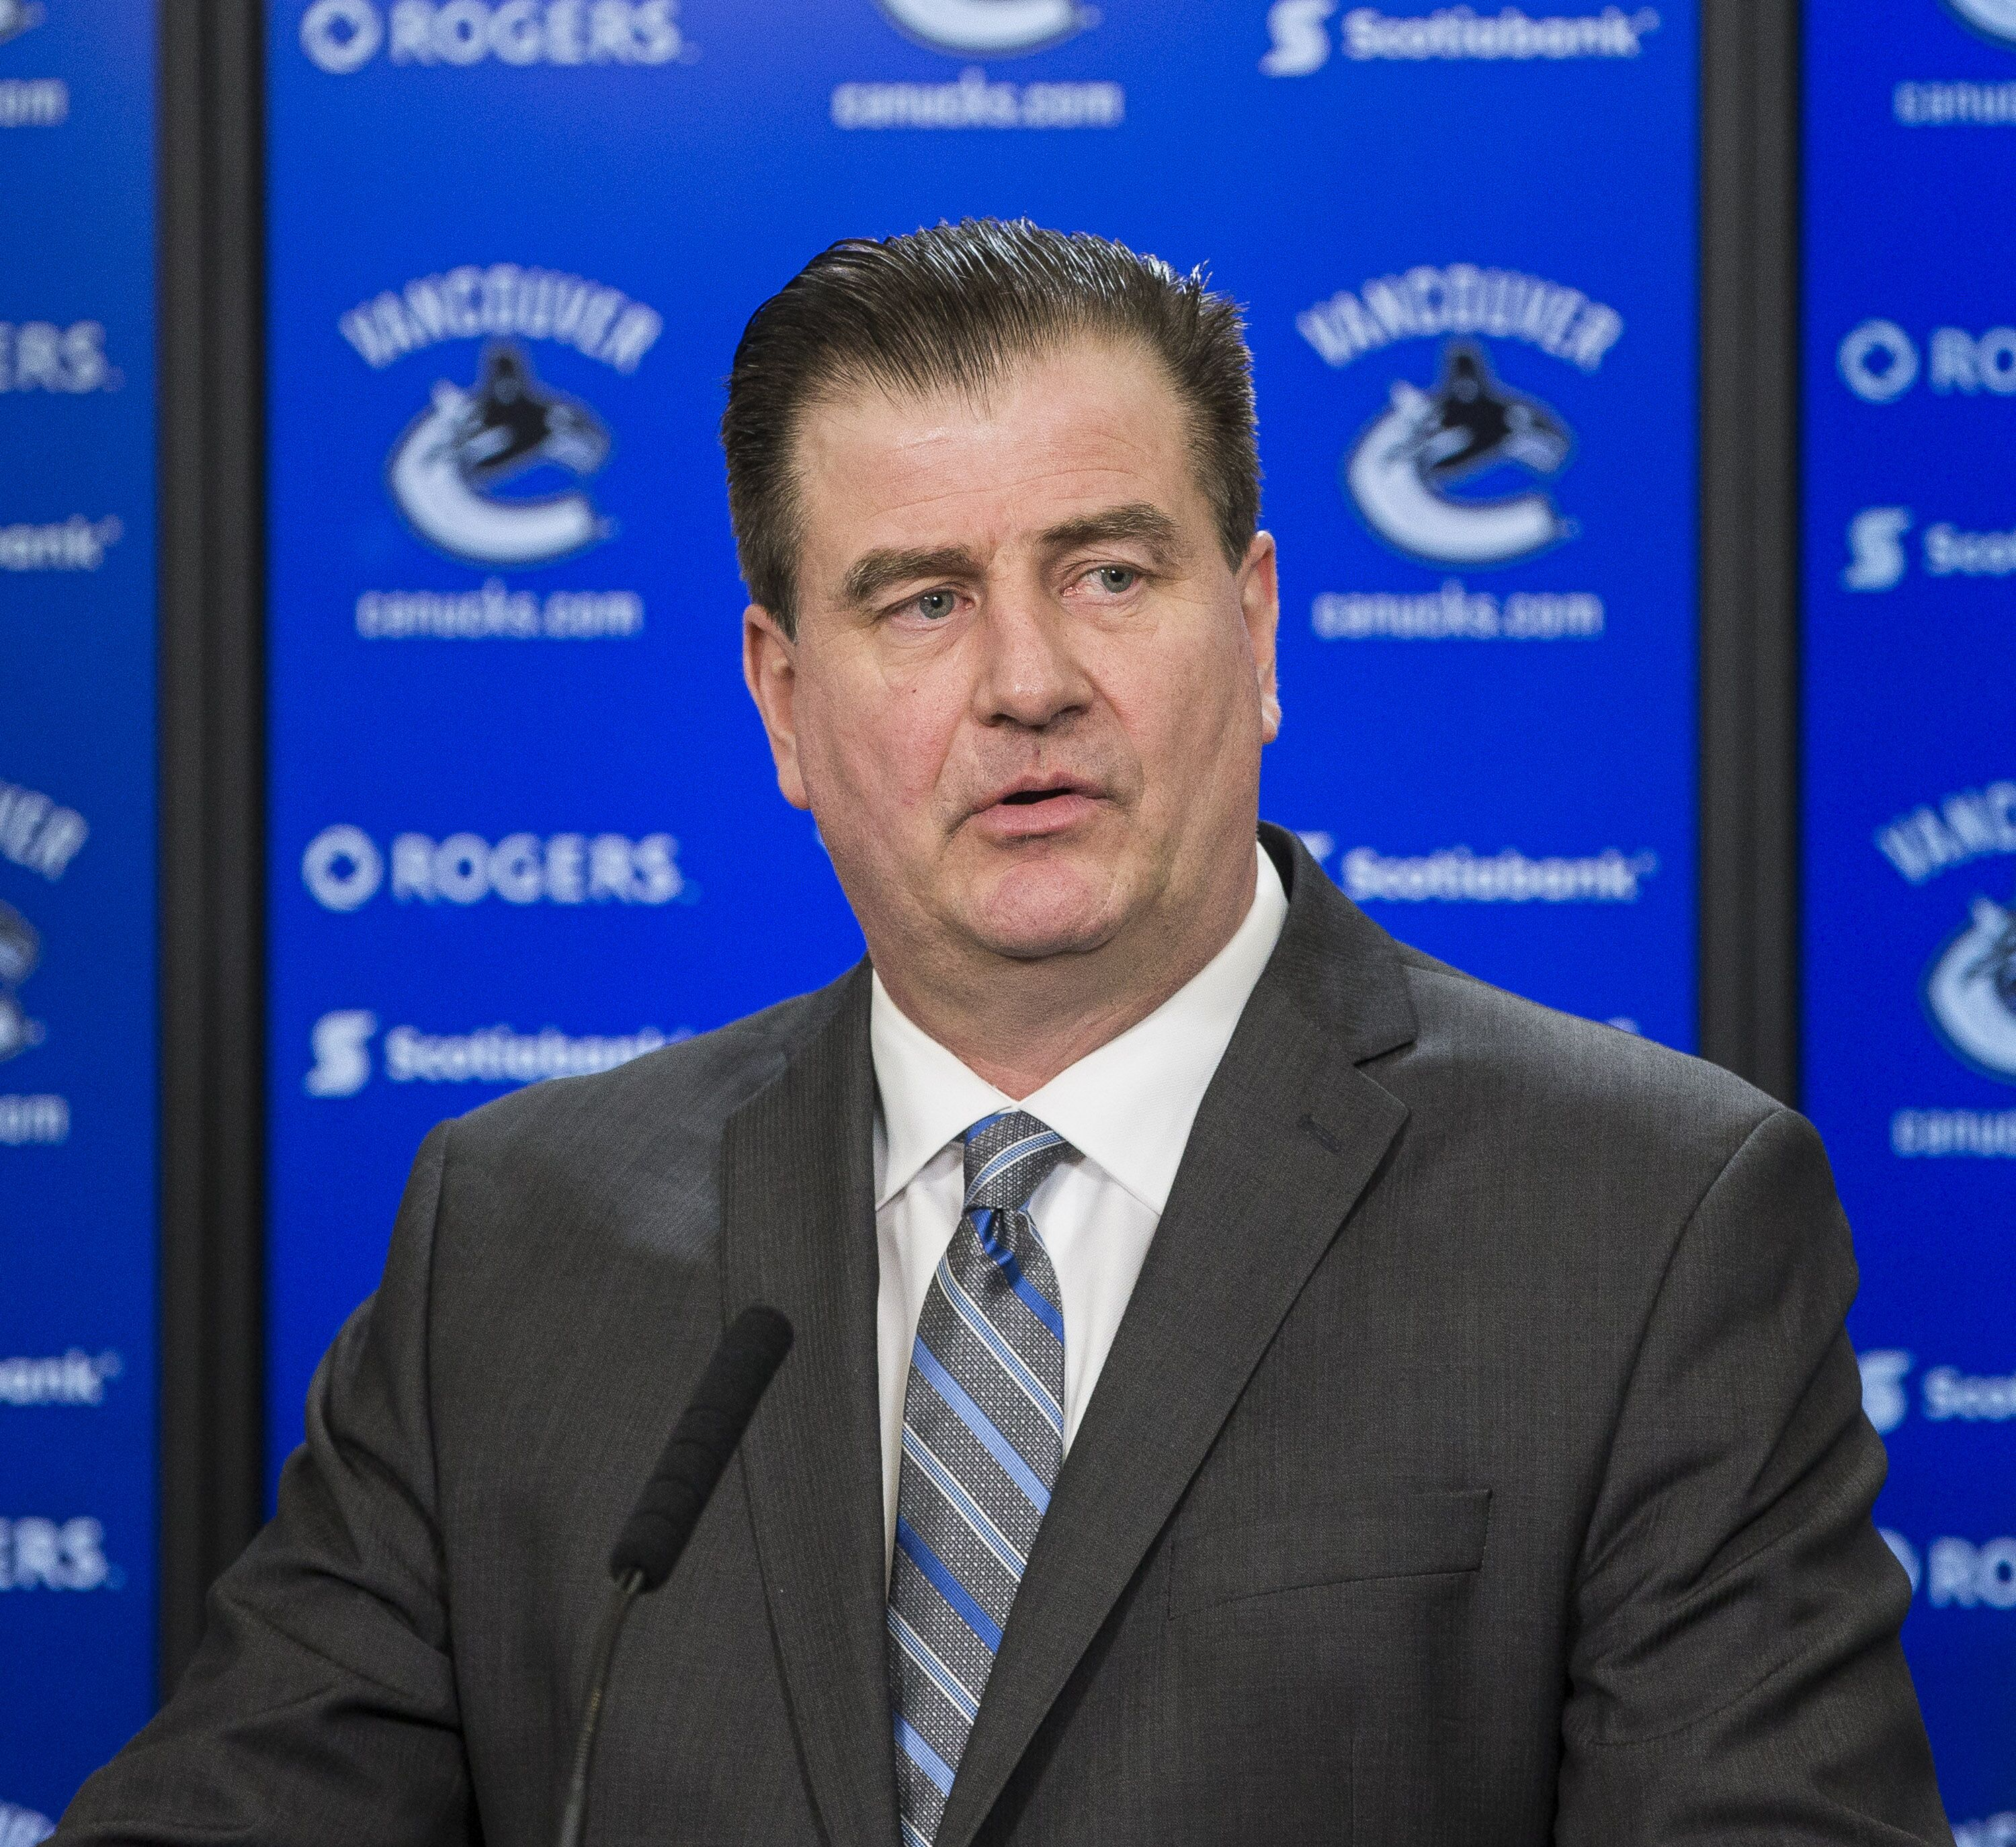 Vancouver Canucks: Jim Benning has clear path to fix the top six